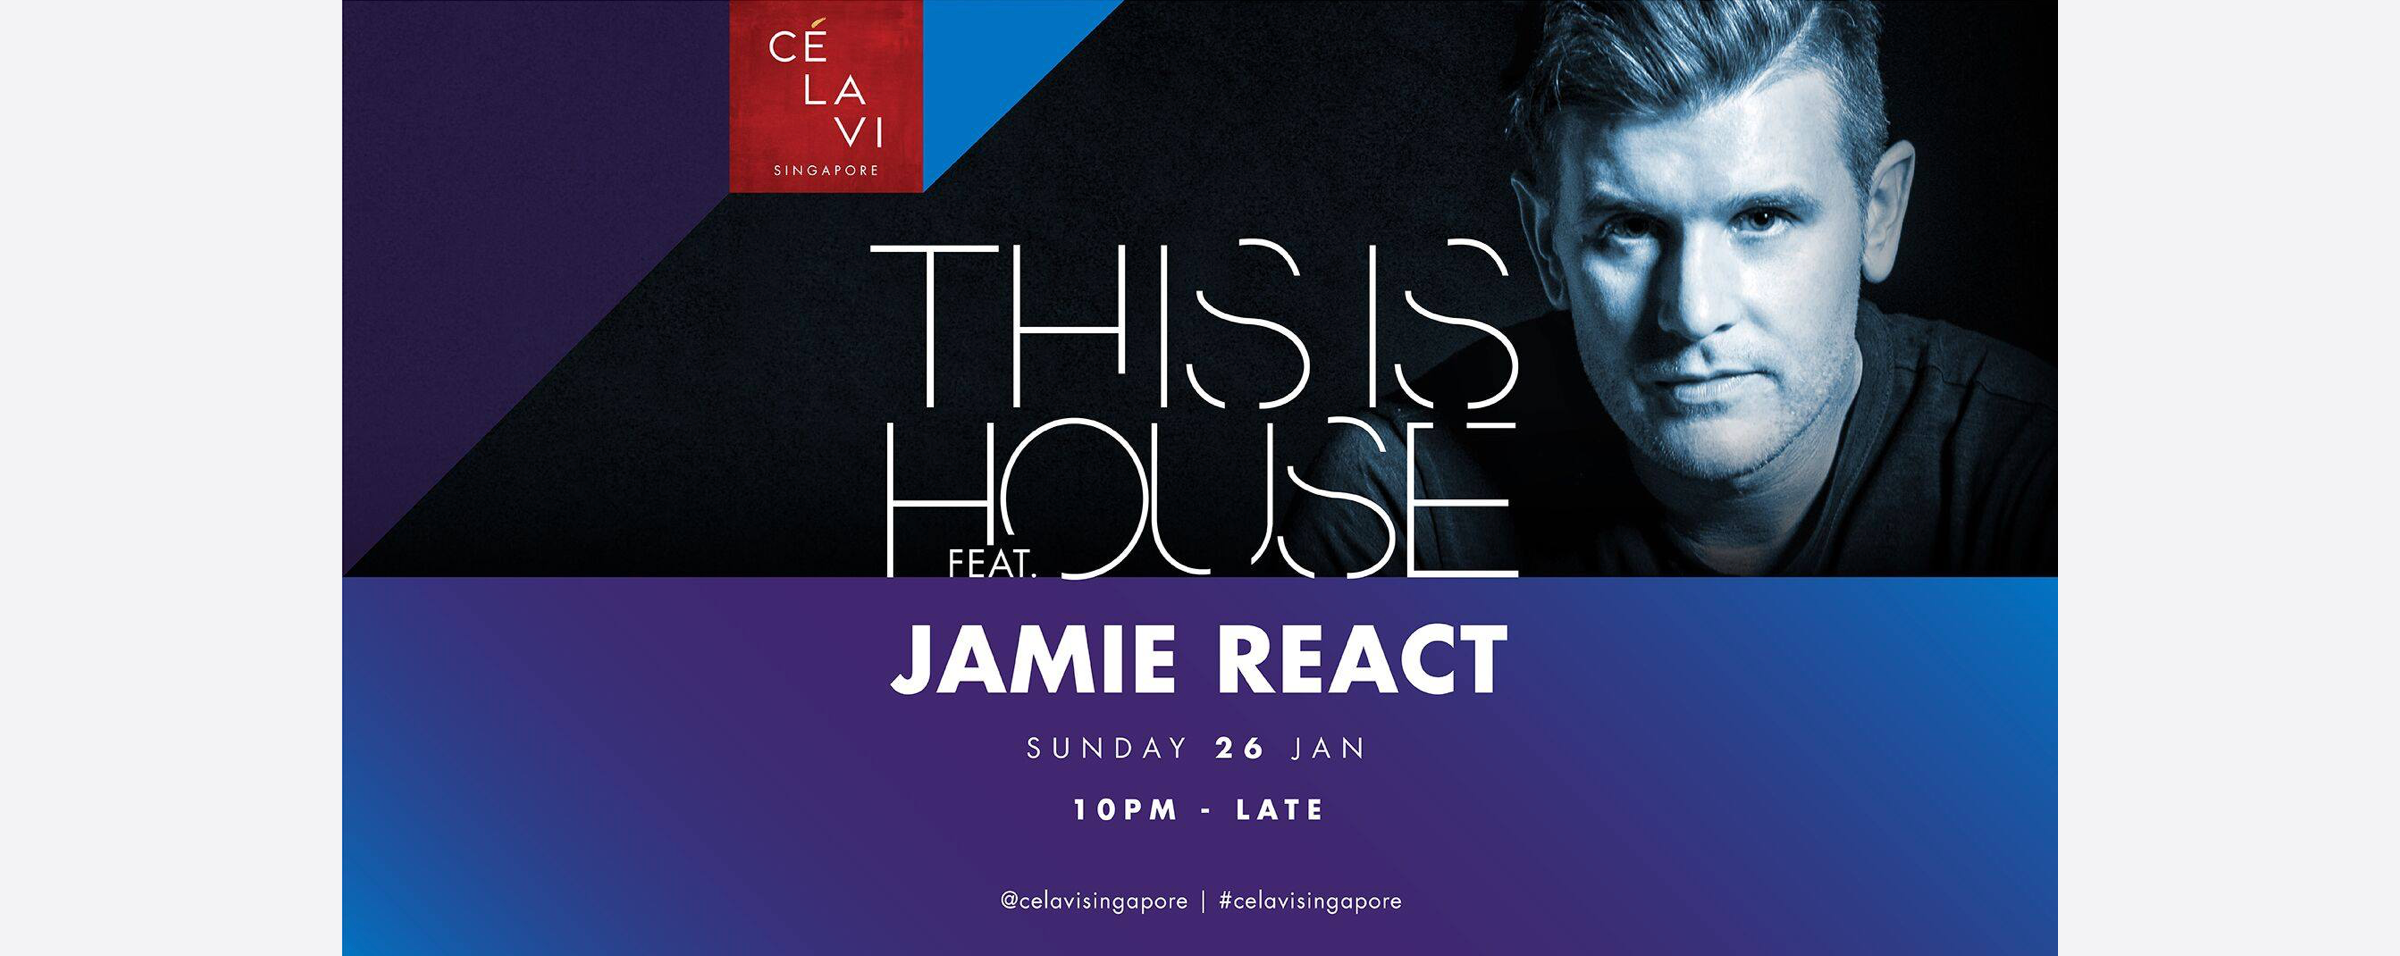 This Is House Feat. Jamie React